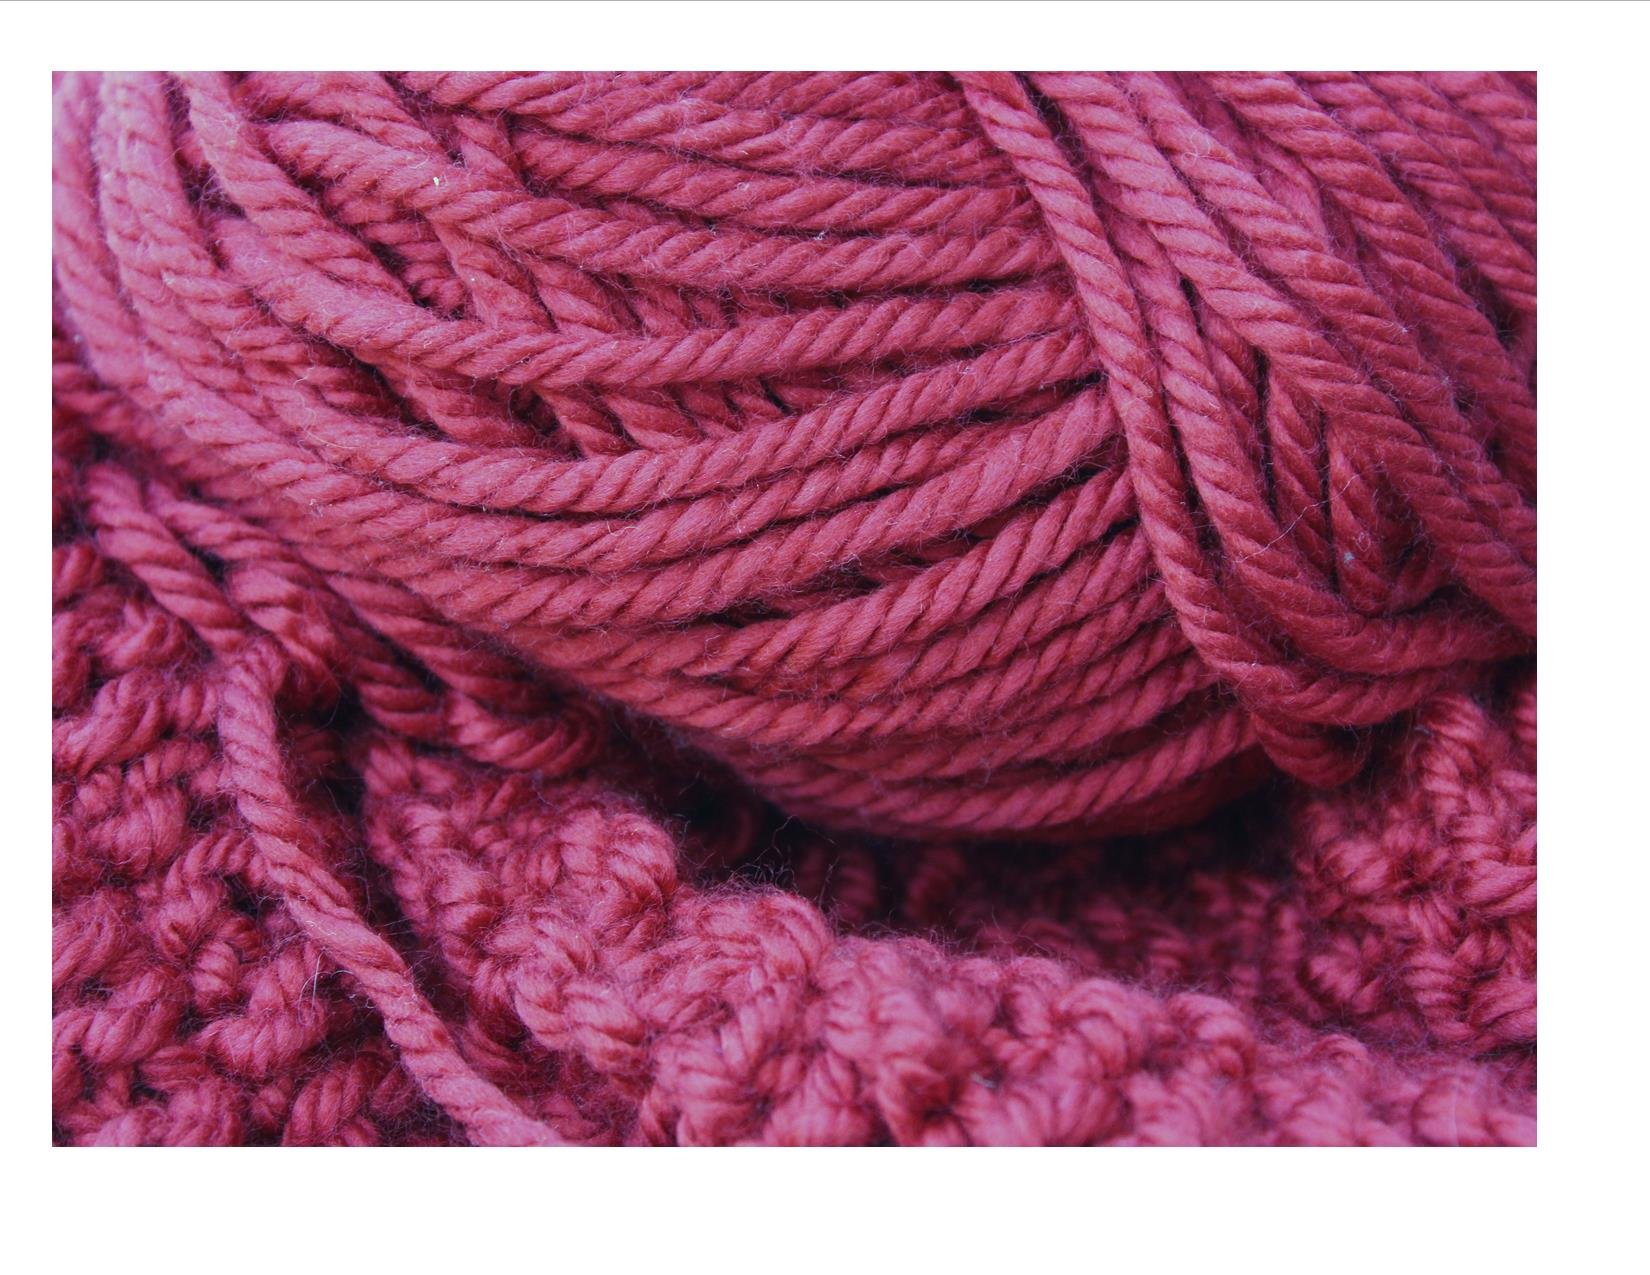 Knitting yarn 2